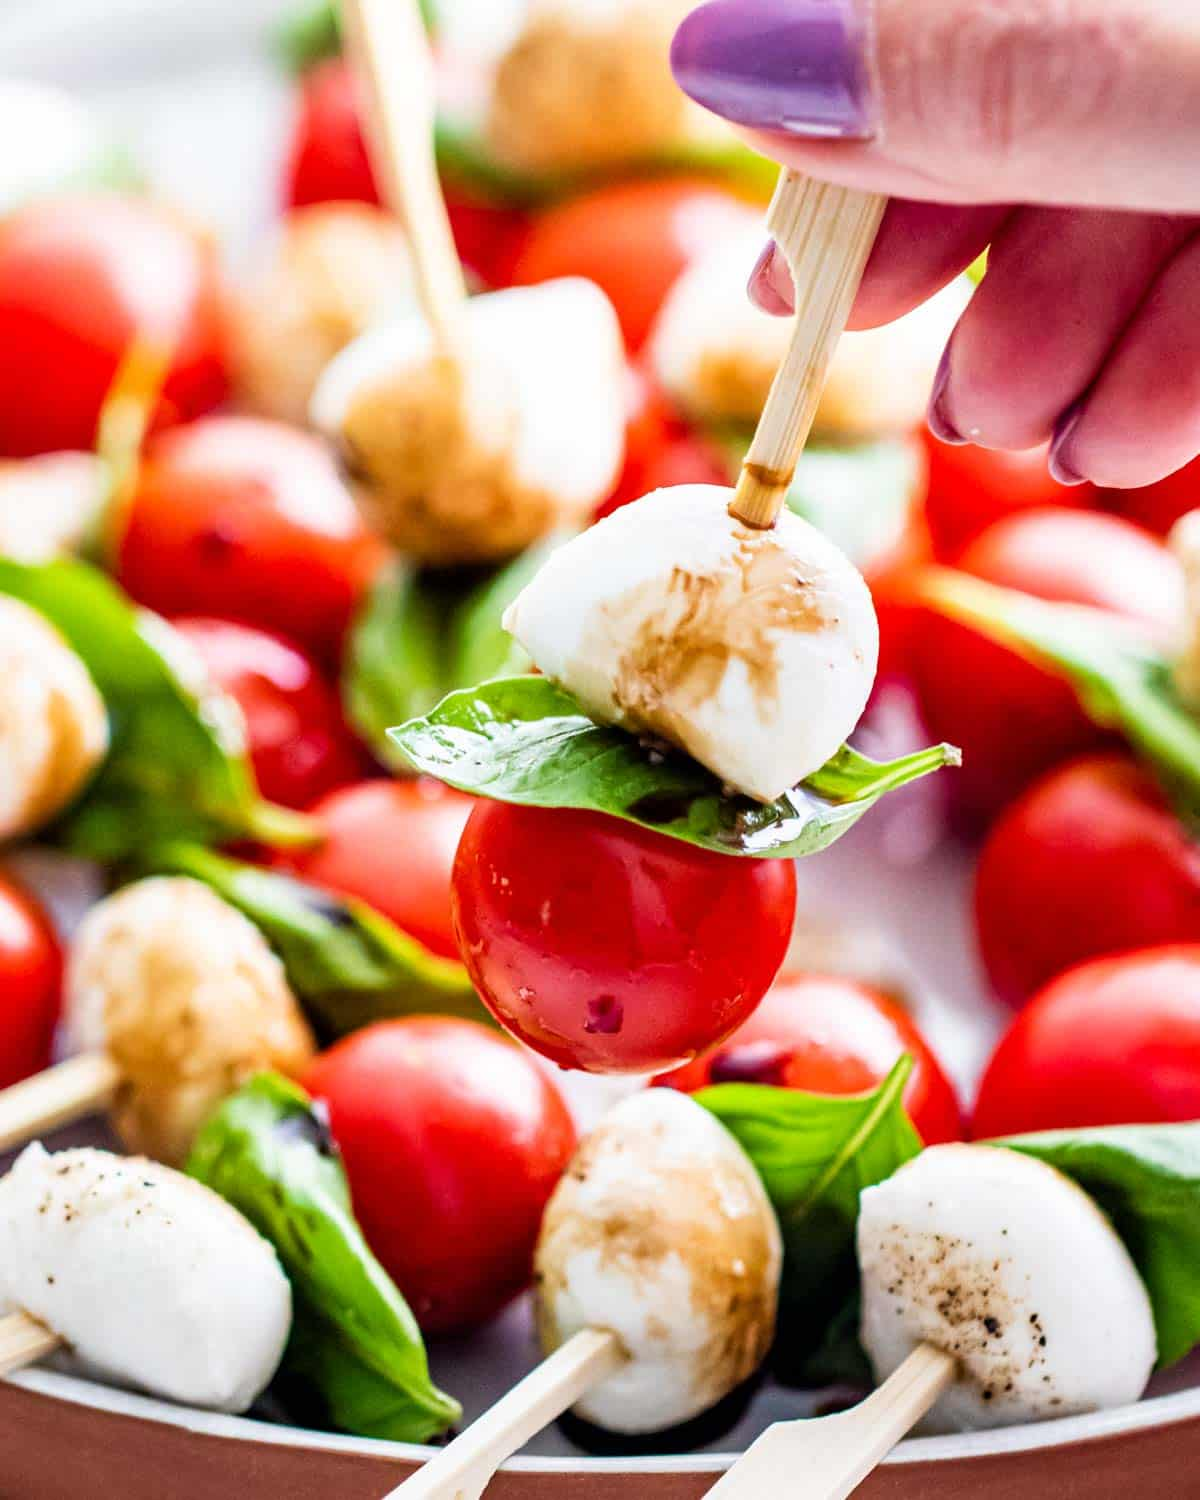 and hand holding a caprese salad bite on a pick over a plate full of them